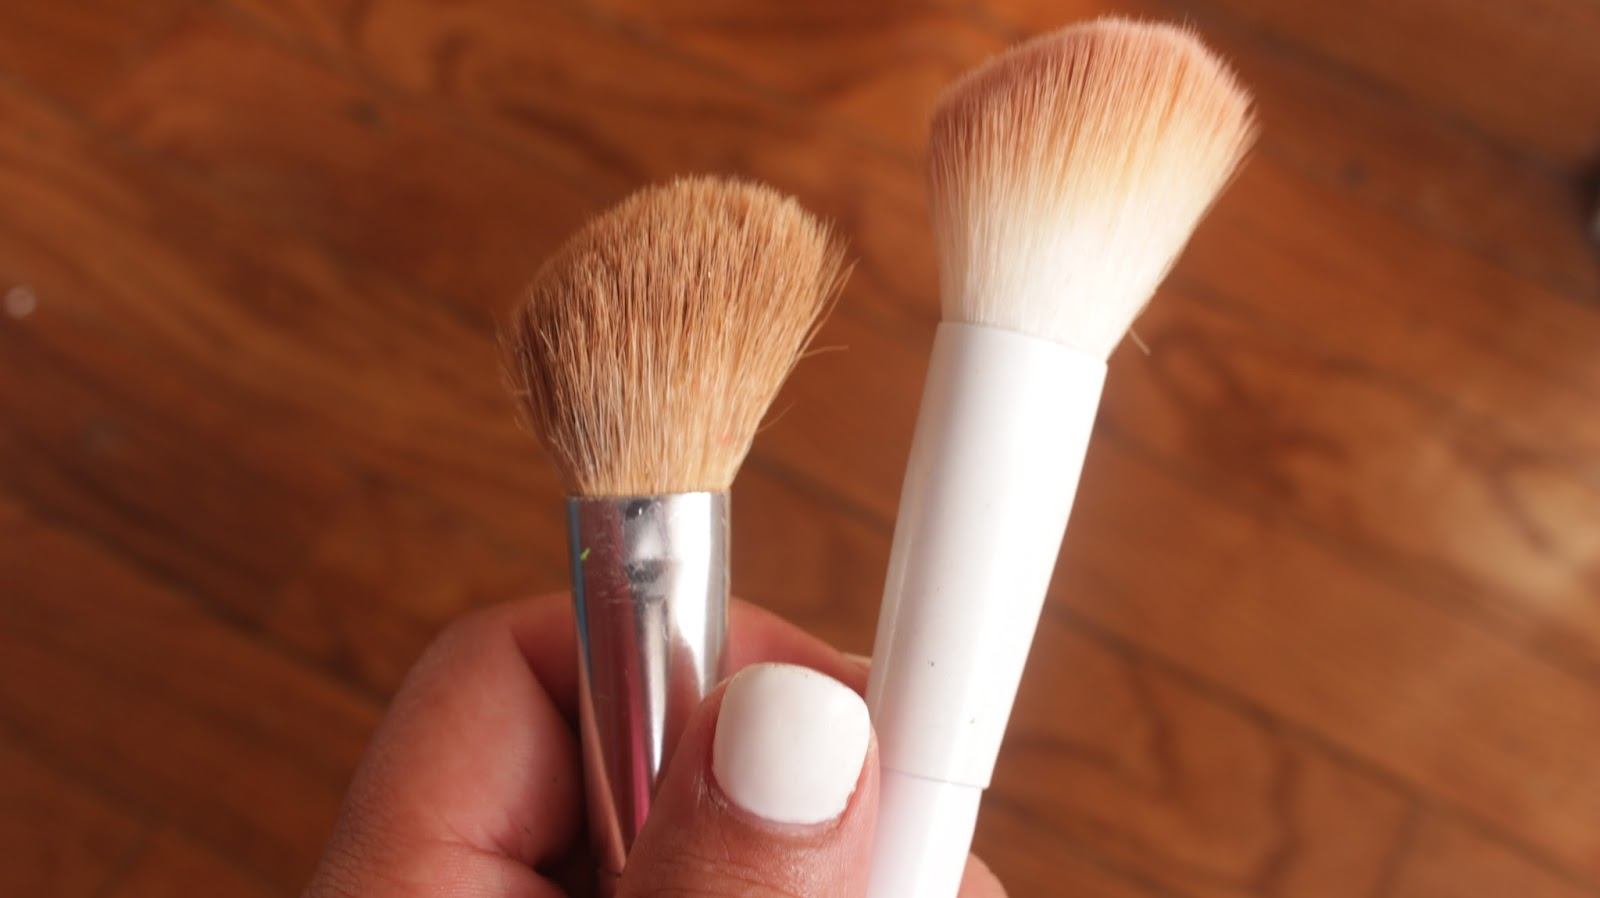 wet n wild brushes names. they offer so many cheaper options that are exactly the same as name brand. this allergy relief has exact ingredients zyrtec and wet n wild brushes names k